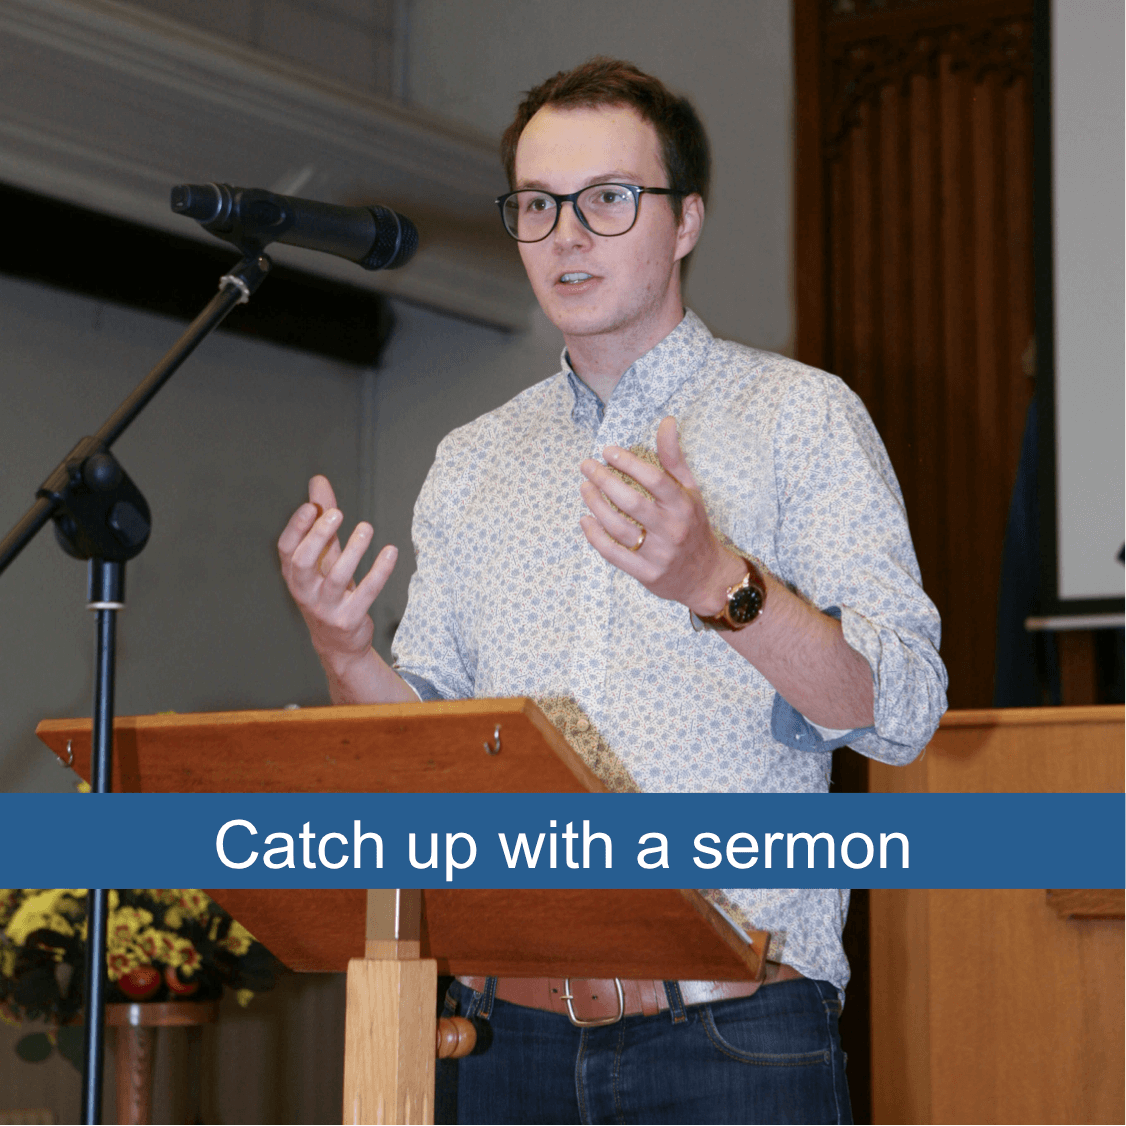 Catch up with sermons from ECBC